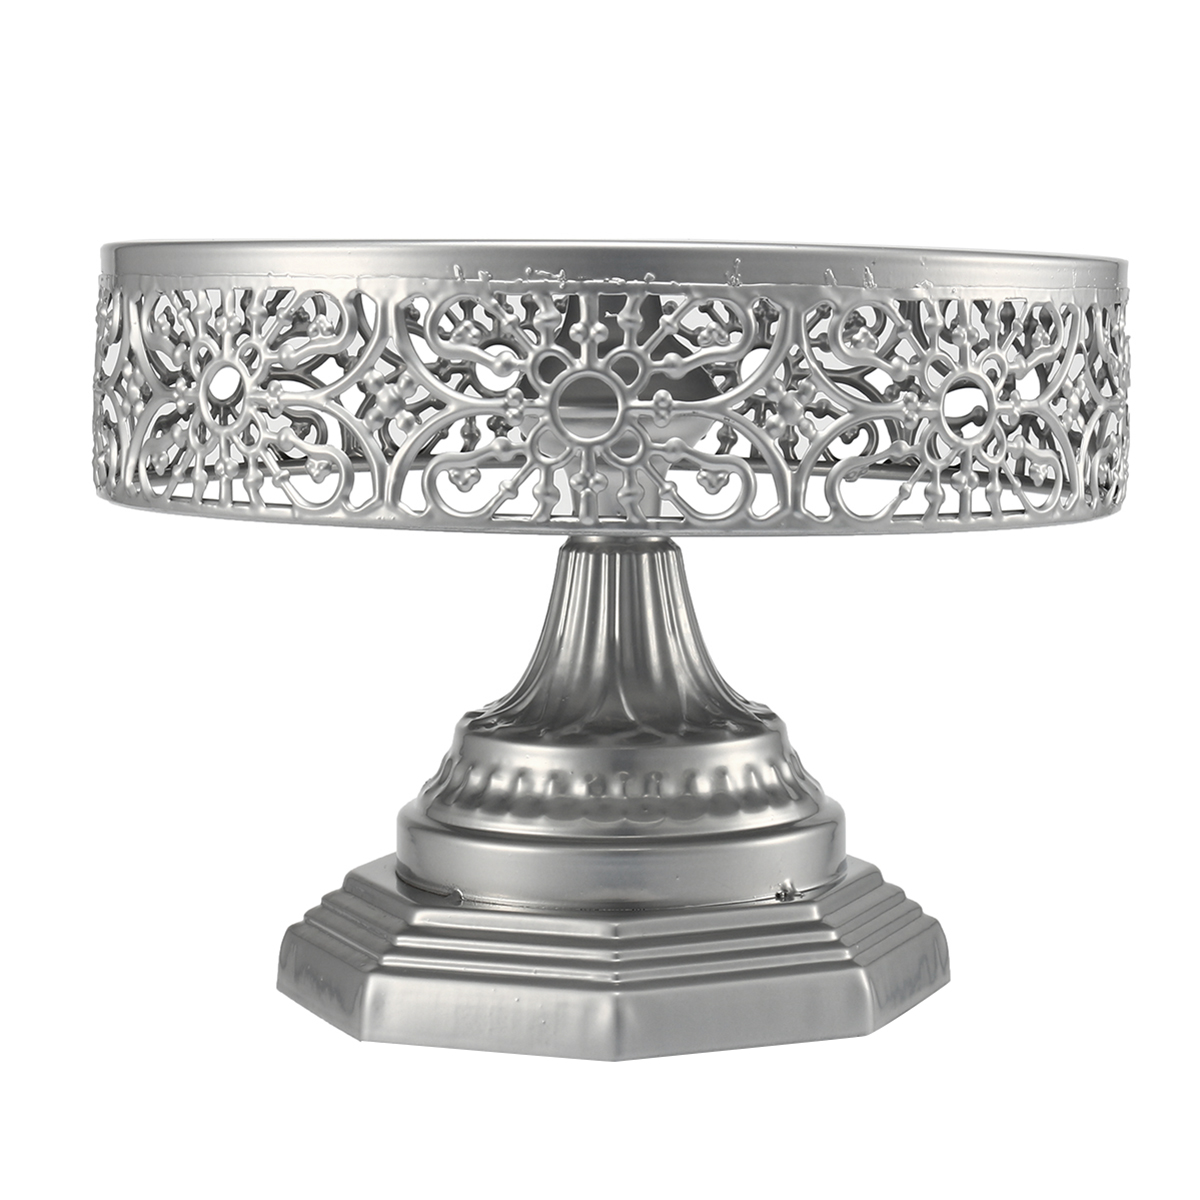 Retro Wedding Cake Stand Round Metal Event Party Display